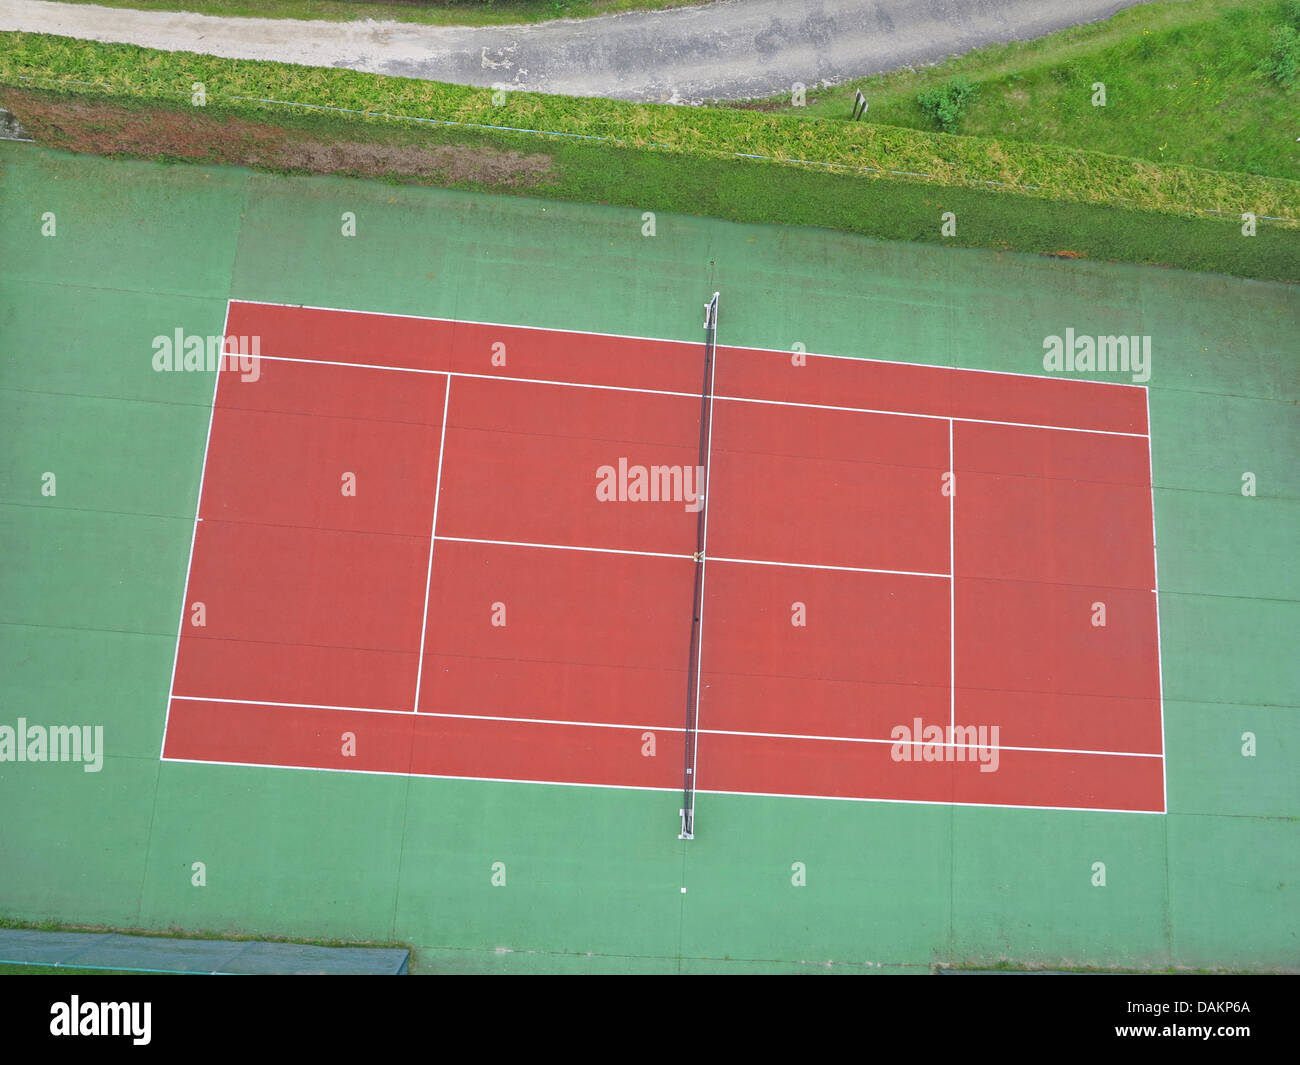 aerial view to tennis court, Germany, North Rhine-Westphalia - Stock Image